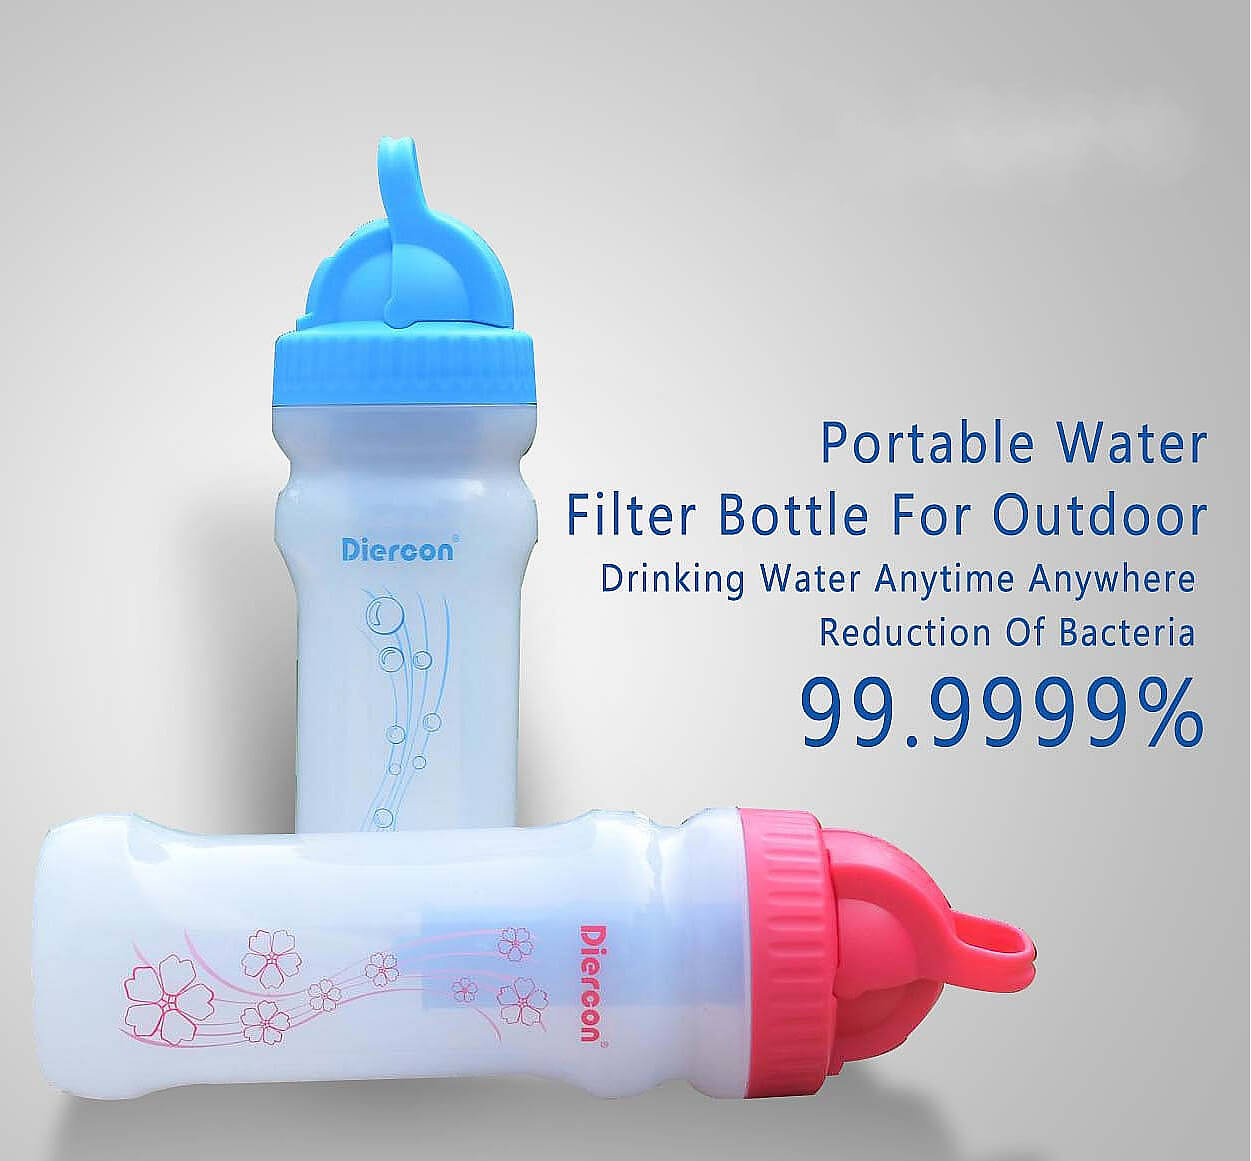 removable filters both of two filters can be replaced the replacement filters can be bought on amazon food grade material amazing sports filter bottle